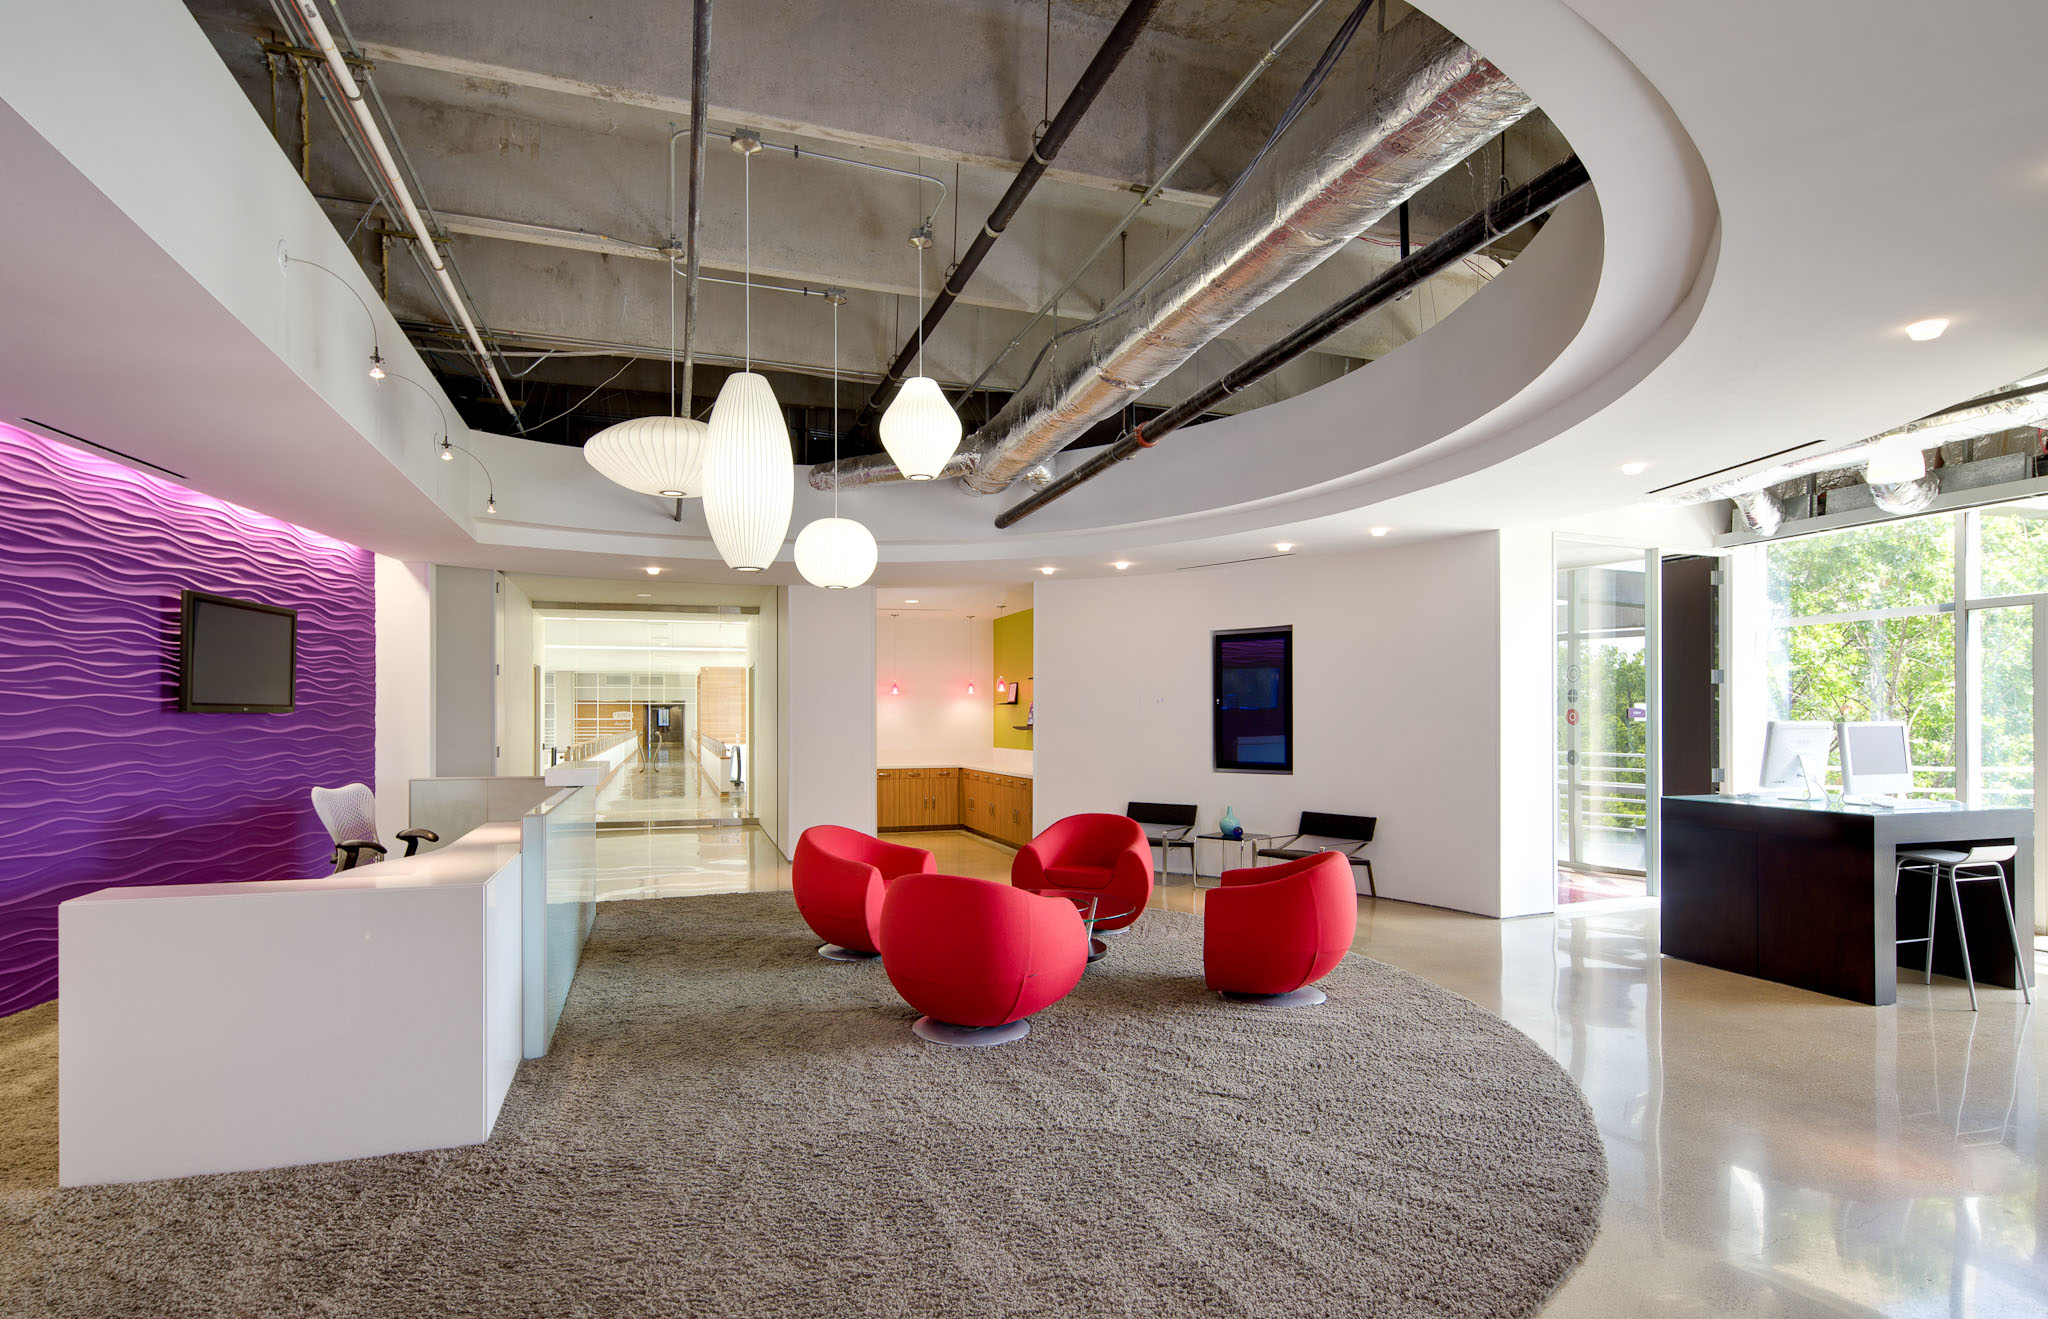 Sean gallagher photography portfolio images commercial for Ad agency office design